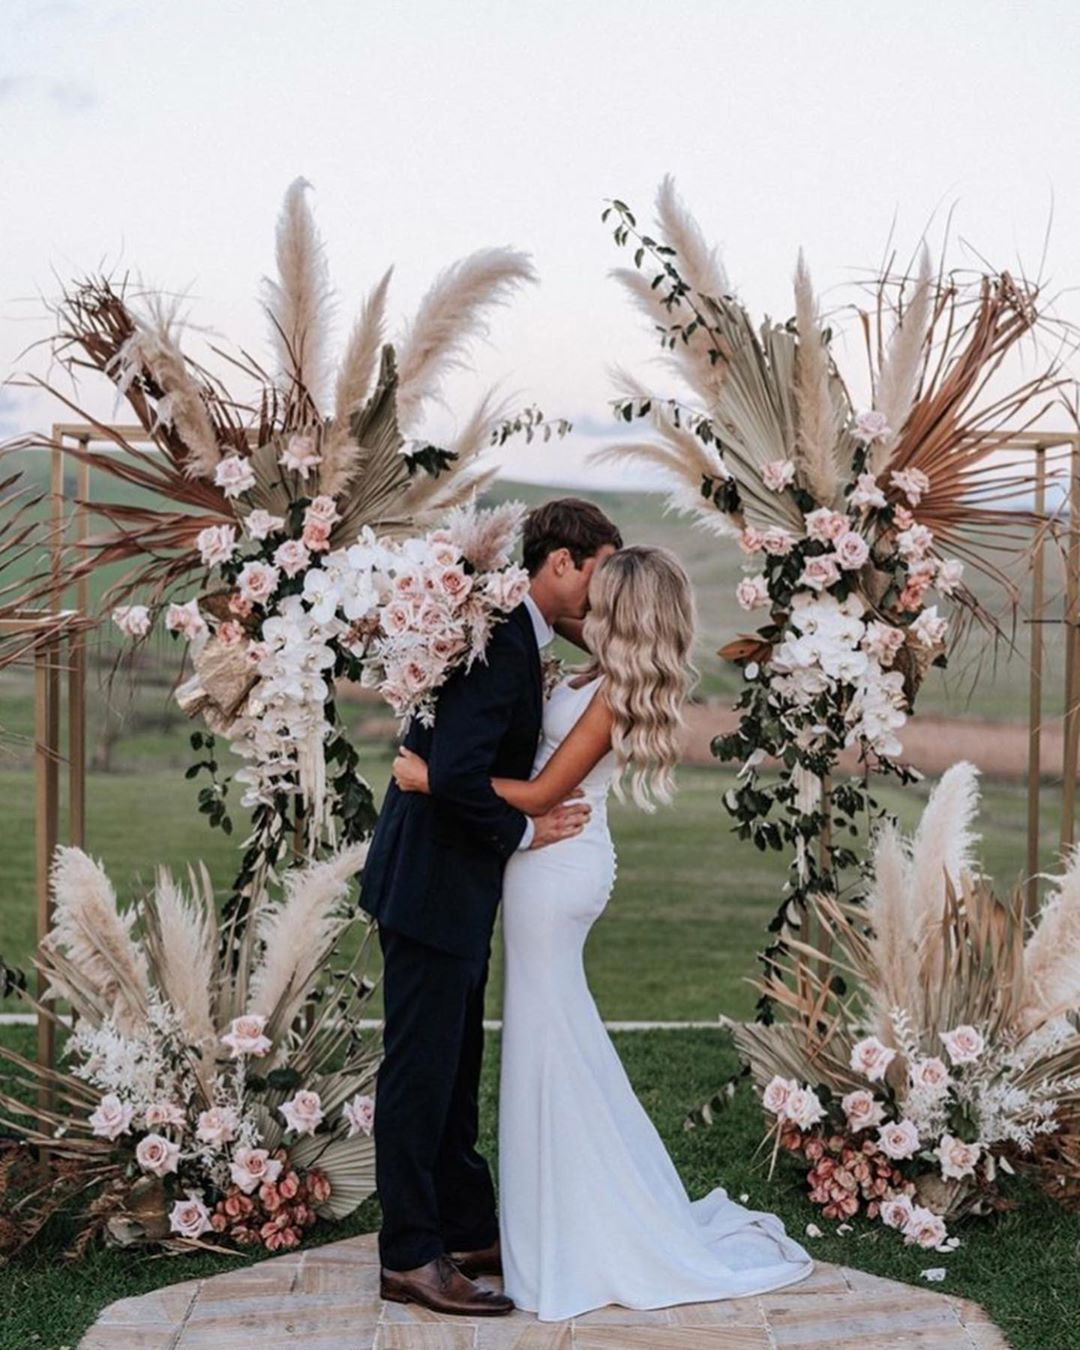 "Mrs Smith Weddings on Instagram: ""WEDDING INSPO 